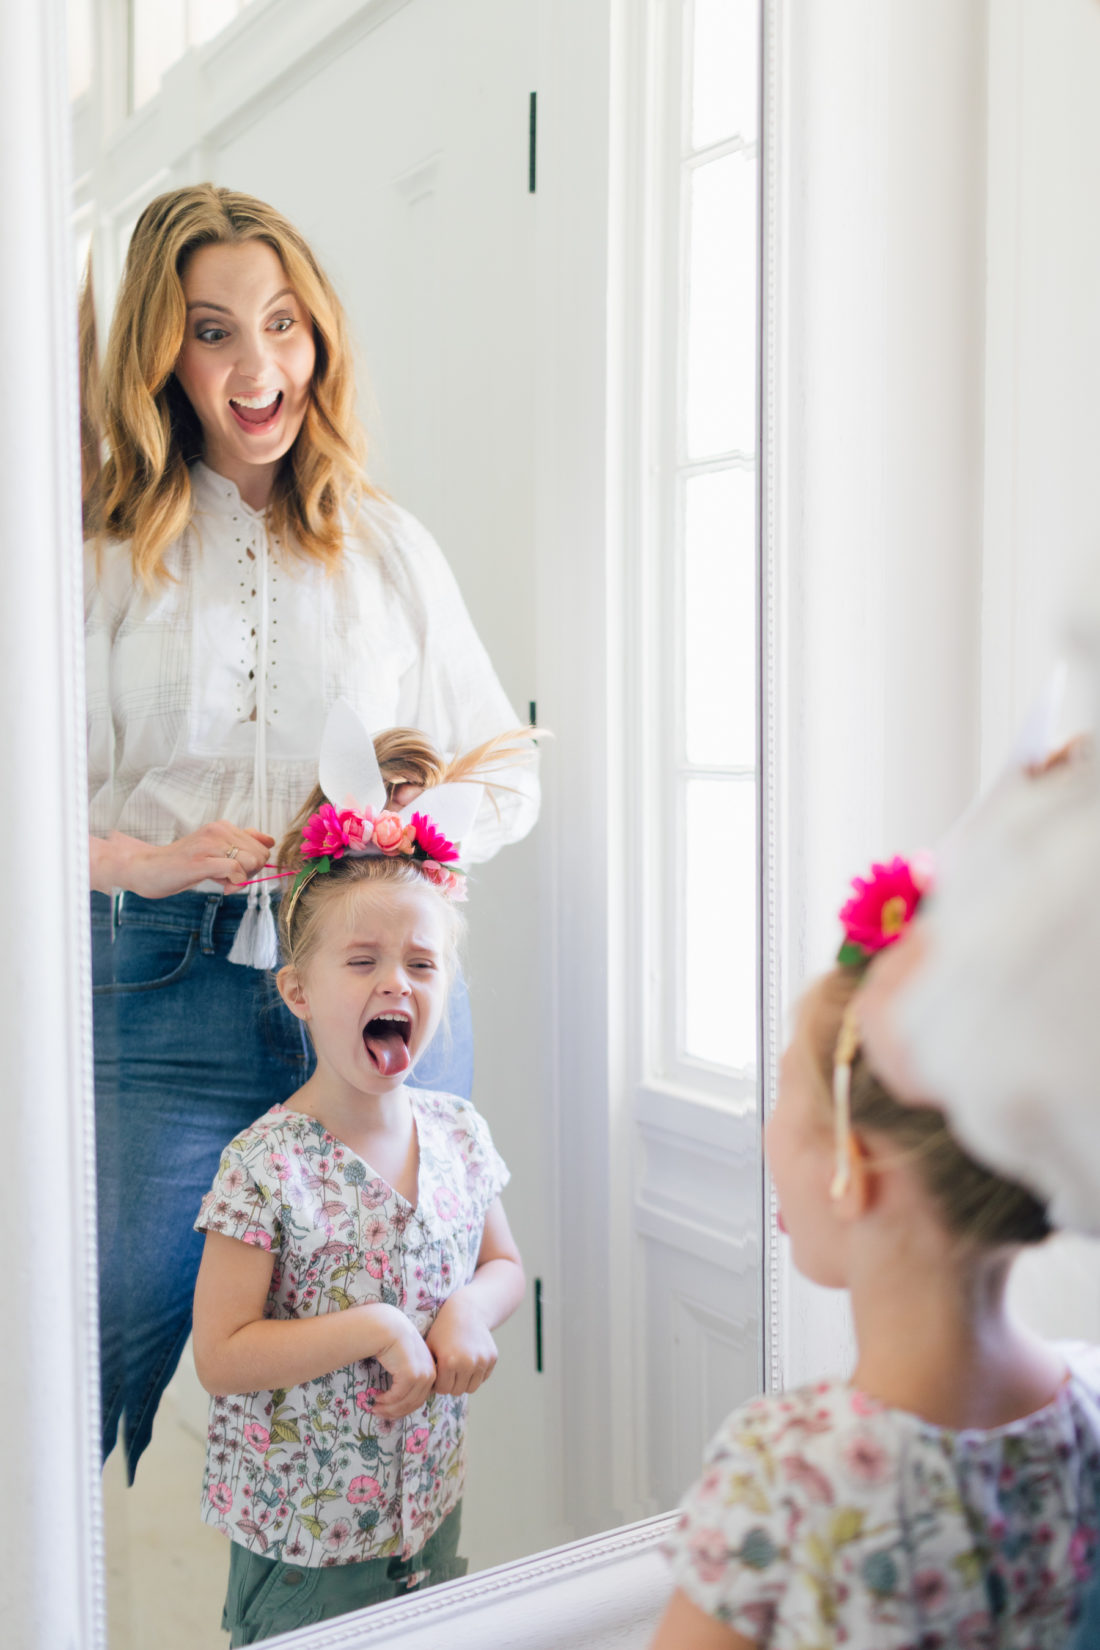 Eva Amurri Martino does her daughter Marlowe's hair while he shares her Woodland Bunny Headband for Easter